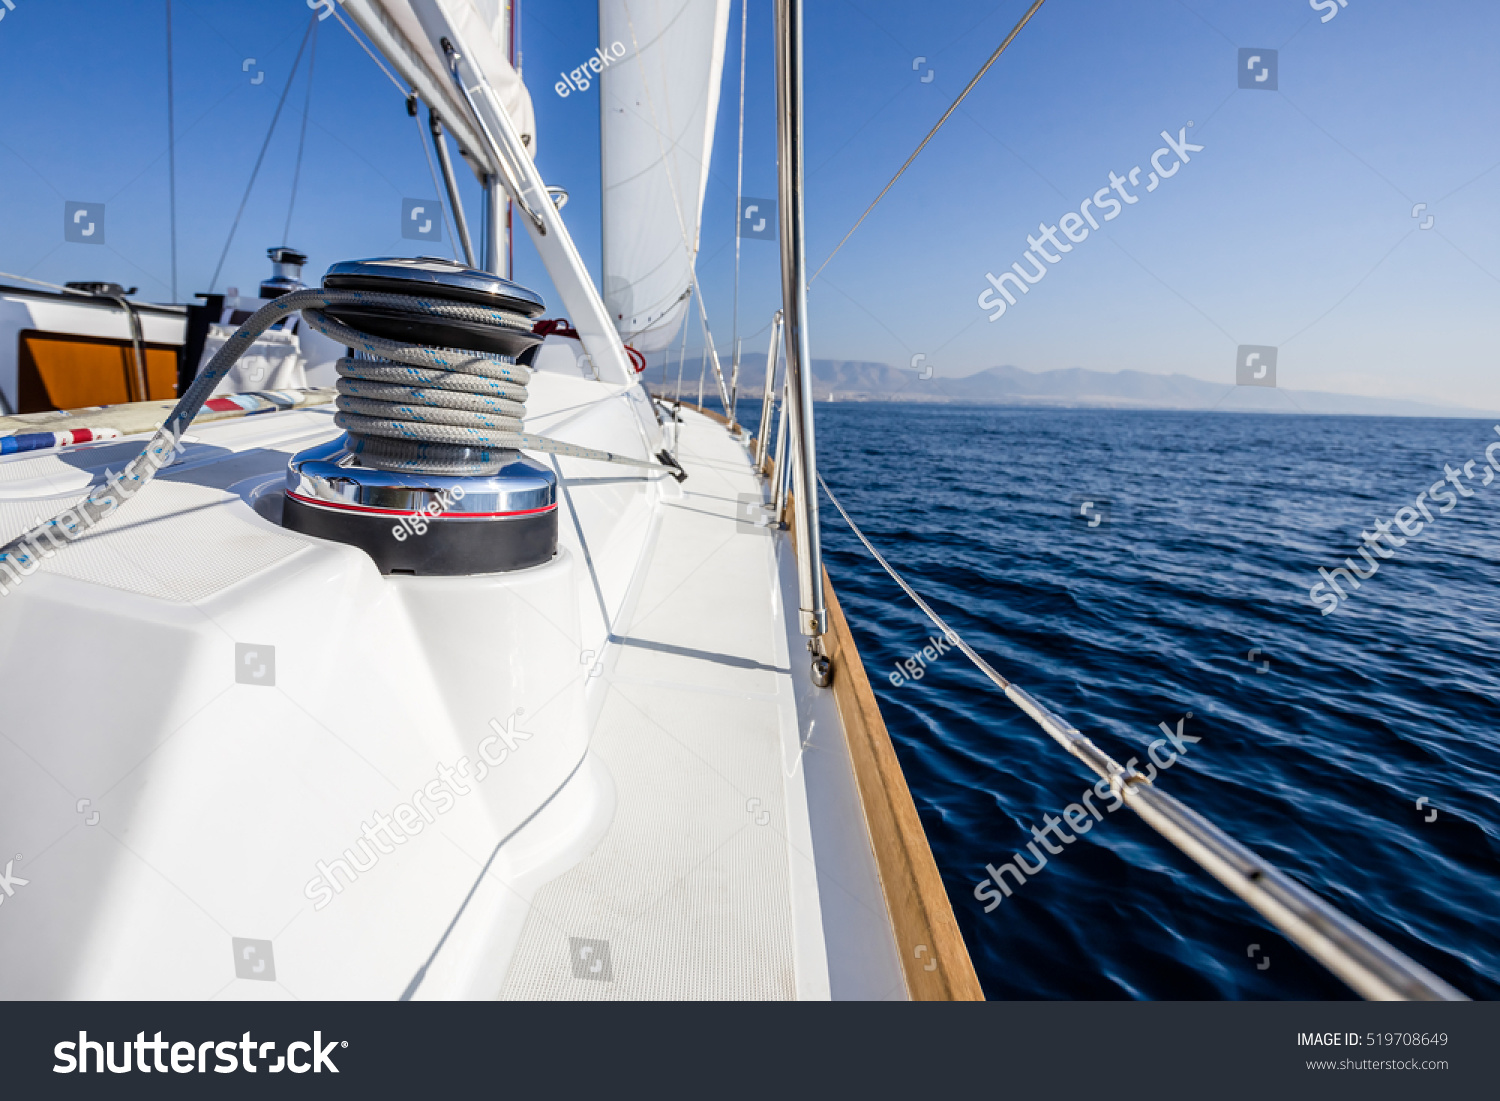 stock-photo-sail-vessel-surfing-on-the-sea-519708649